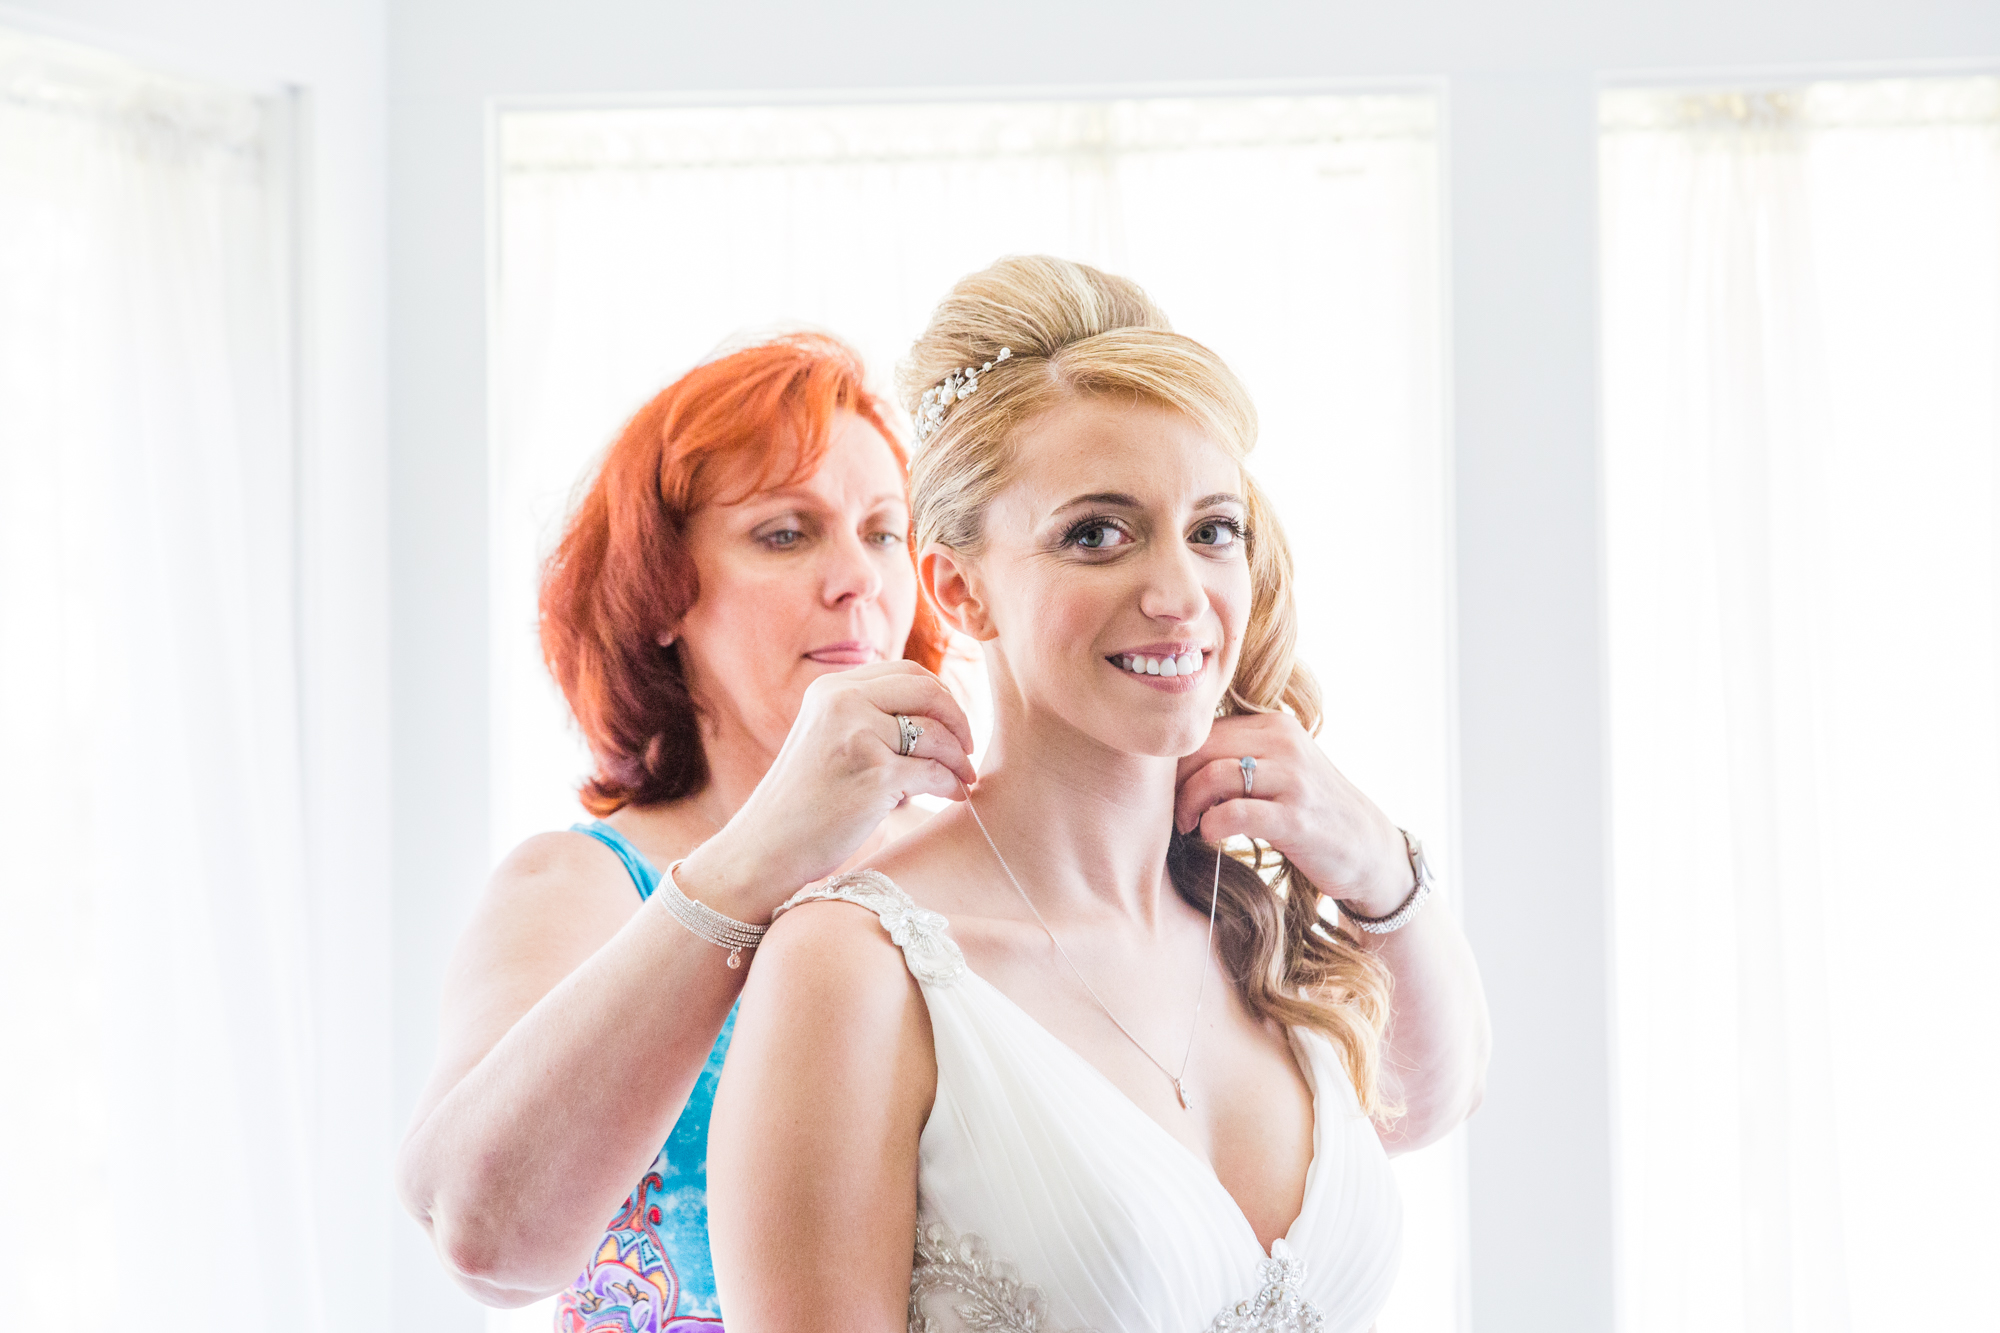 sd wedding-4.jpg